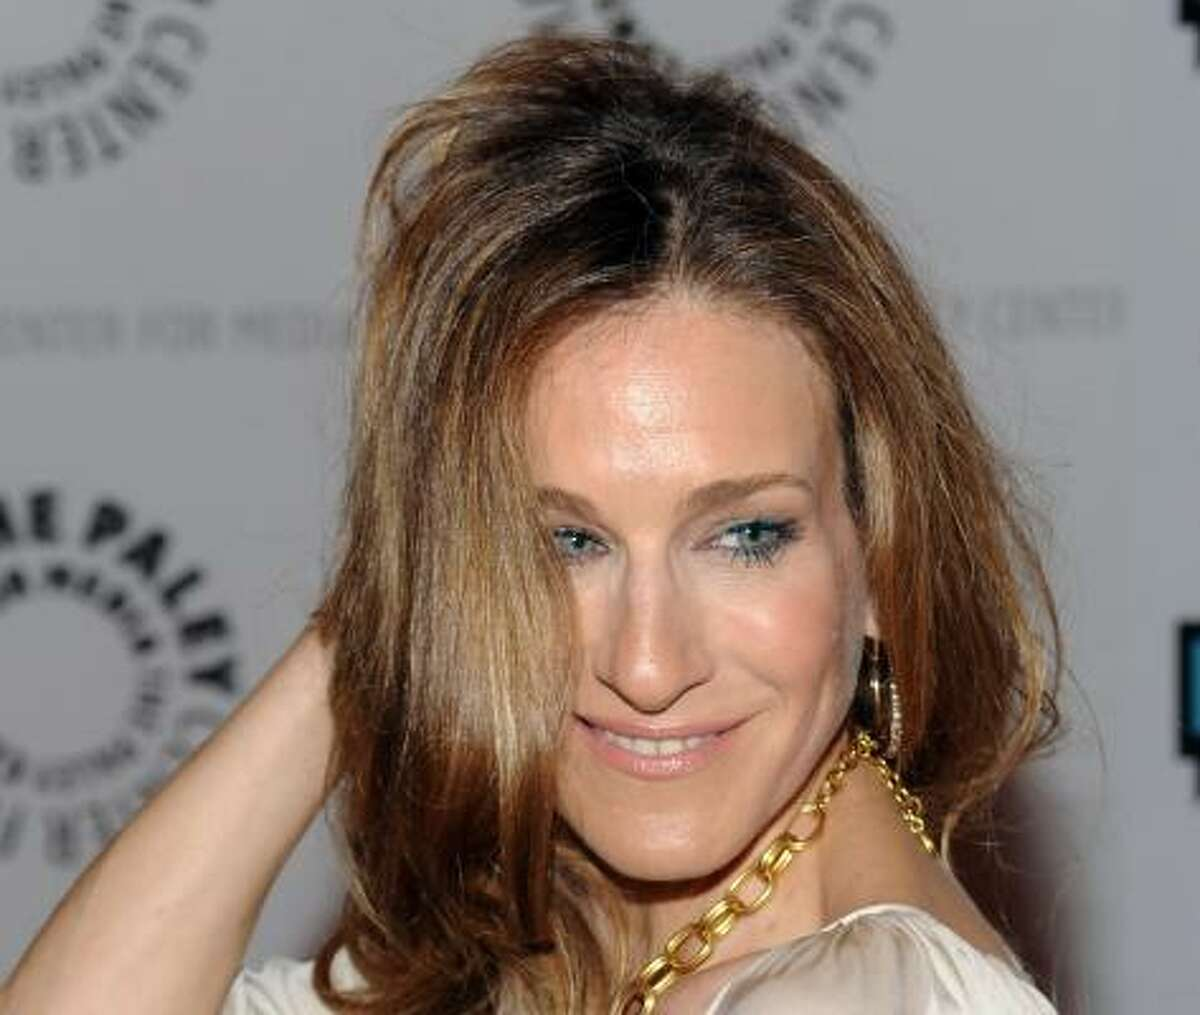 People have debated over Sarah Jessica Parker's looks since she sky-rocketed to fame. So what do you think? Hot or not? Vote here.